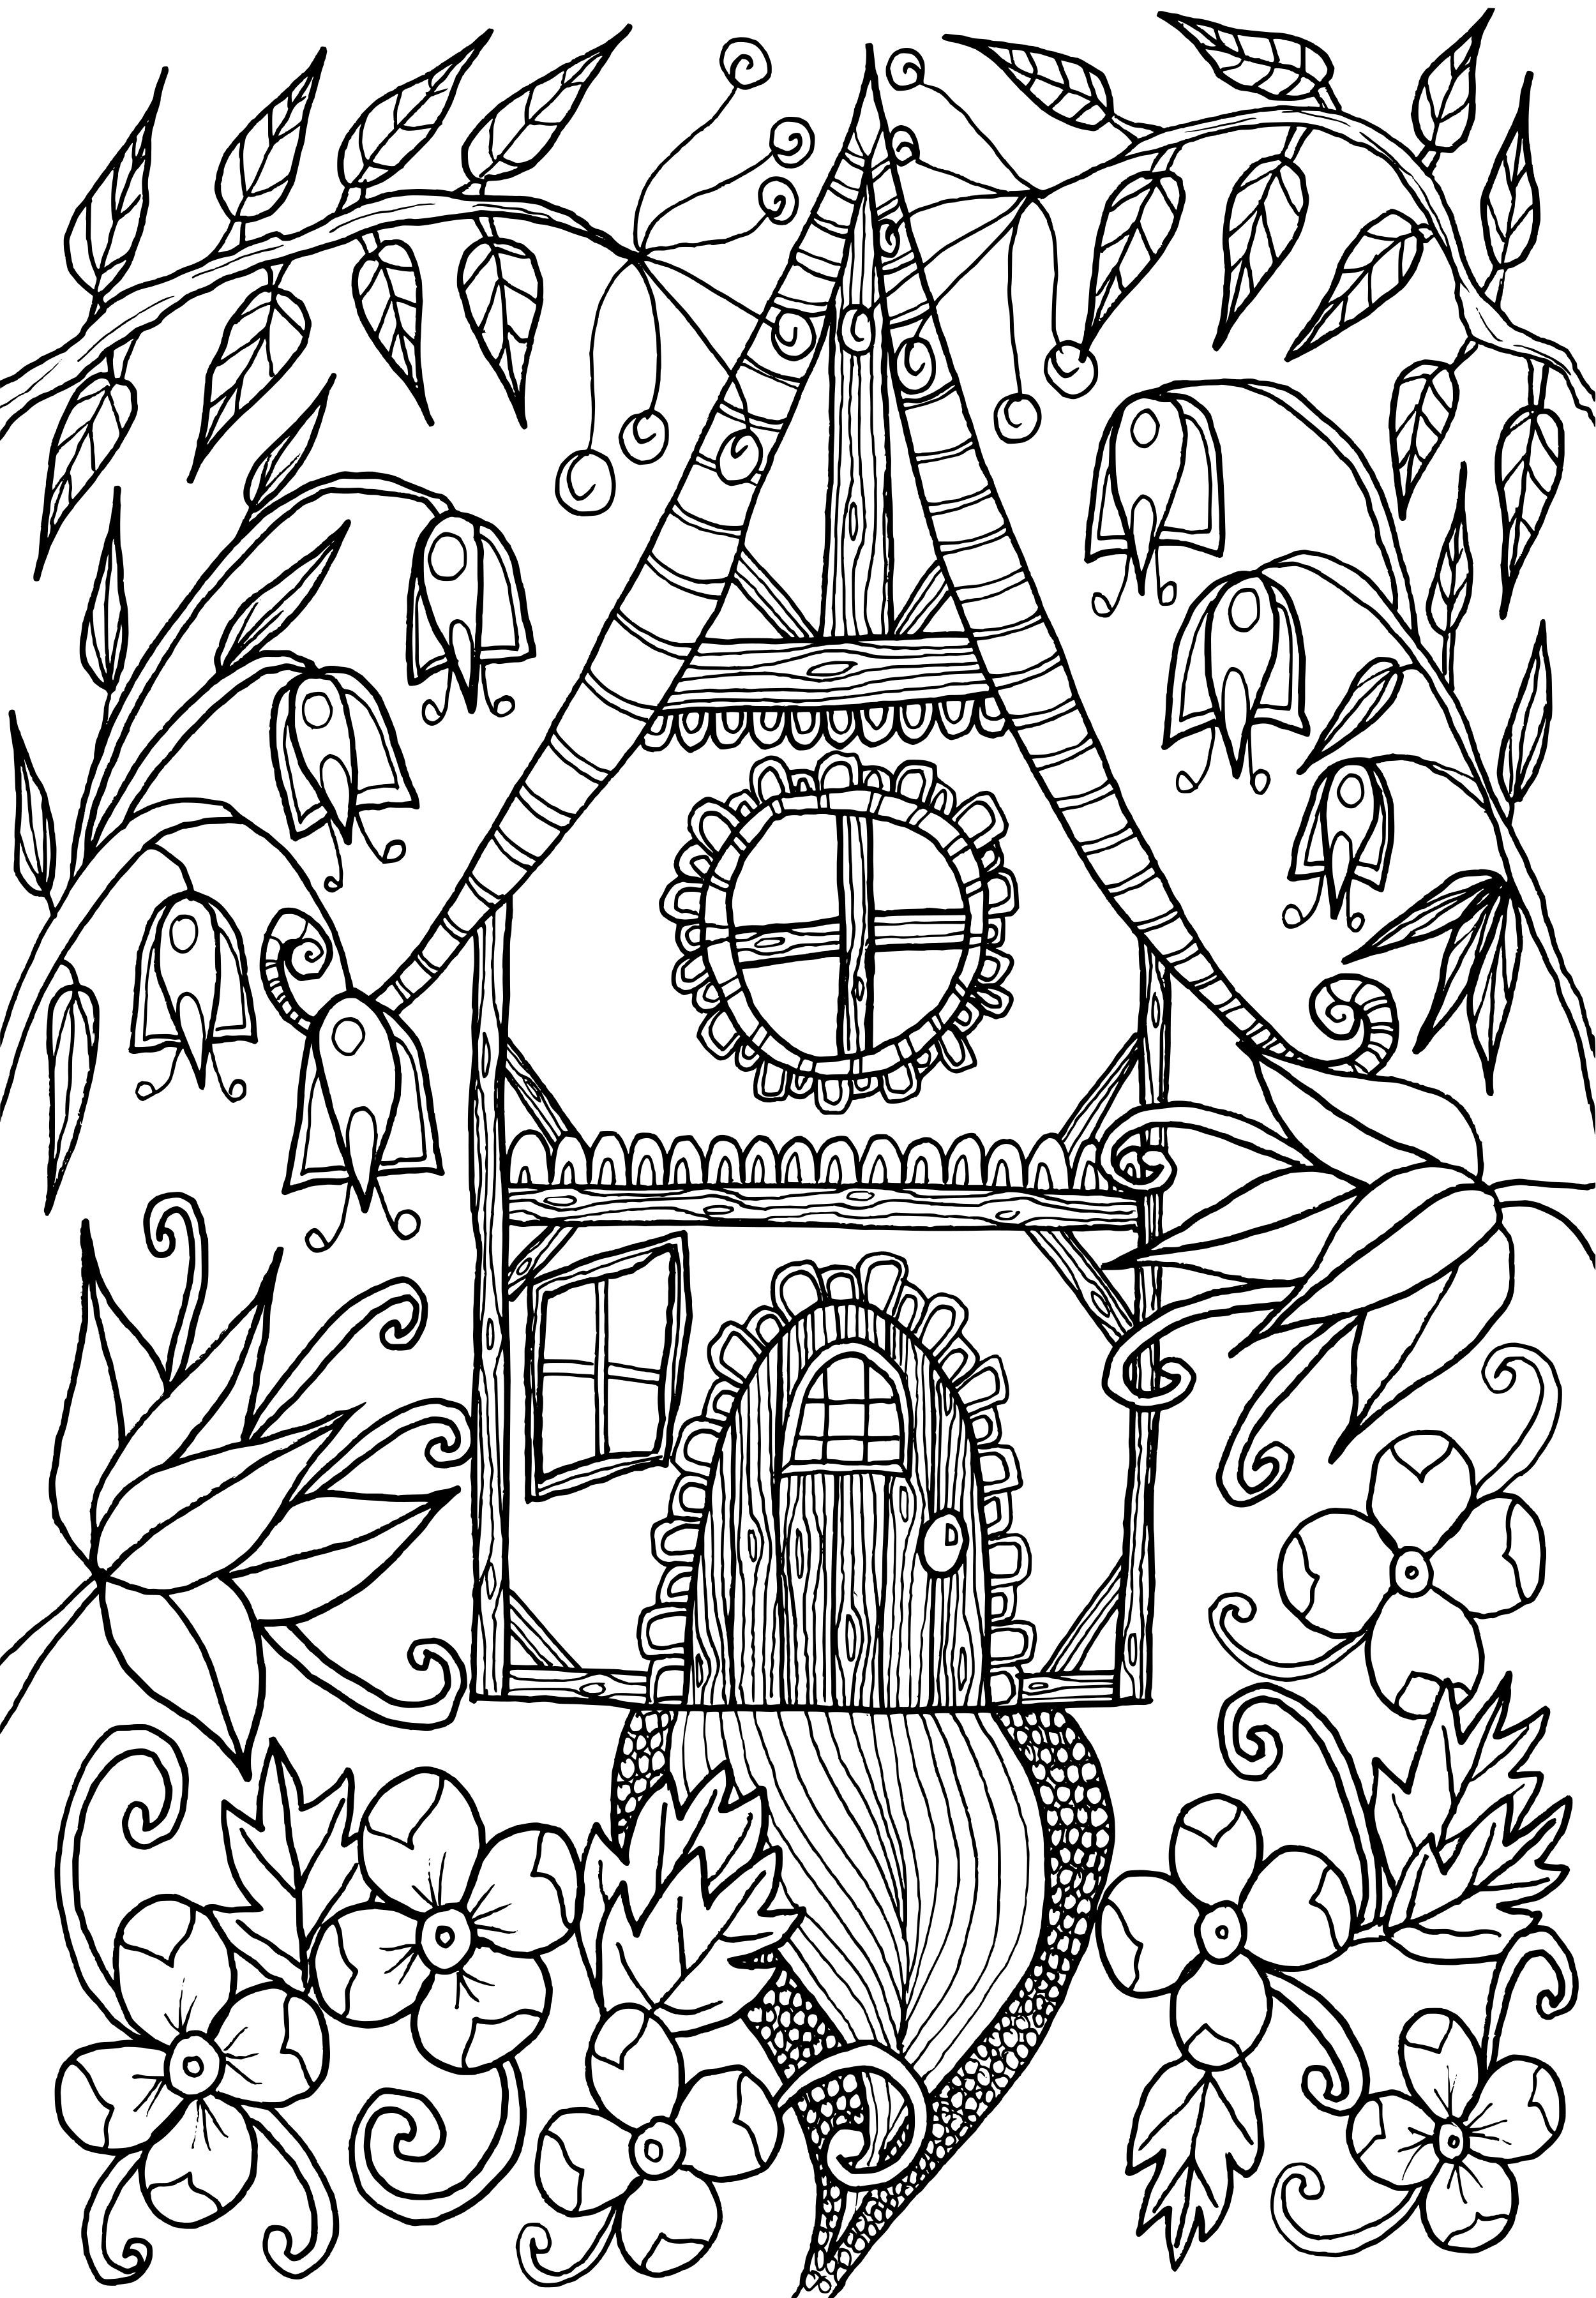 coloring pages house with garden the world of debbie macomber on behance debbie macomber coloring garden with pages house